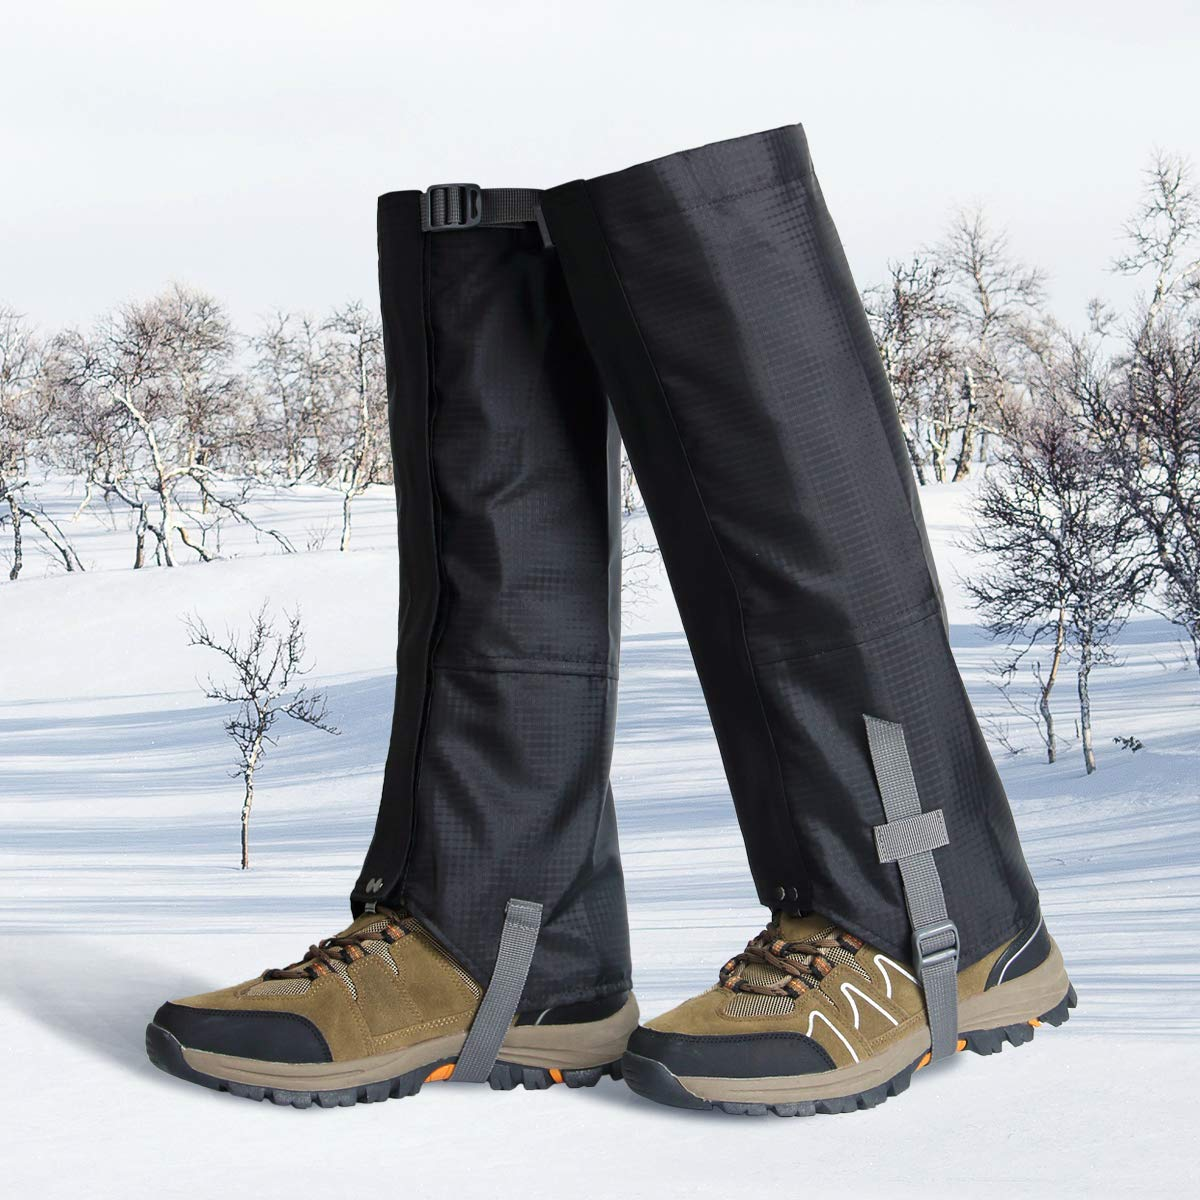 Leg Gaiters Waterproof Snow Gaiter Shoes Gaiters 600D Anti-Tear Oxford Cloth for Outdoor Hiking Walking Climbing Hunting